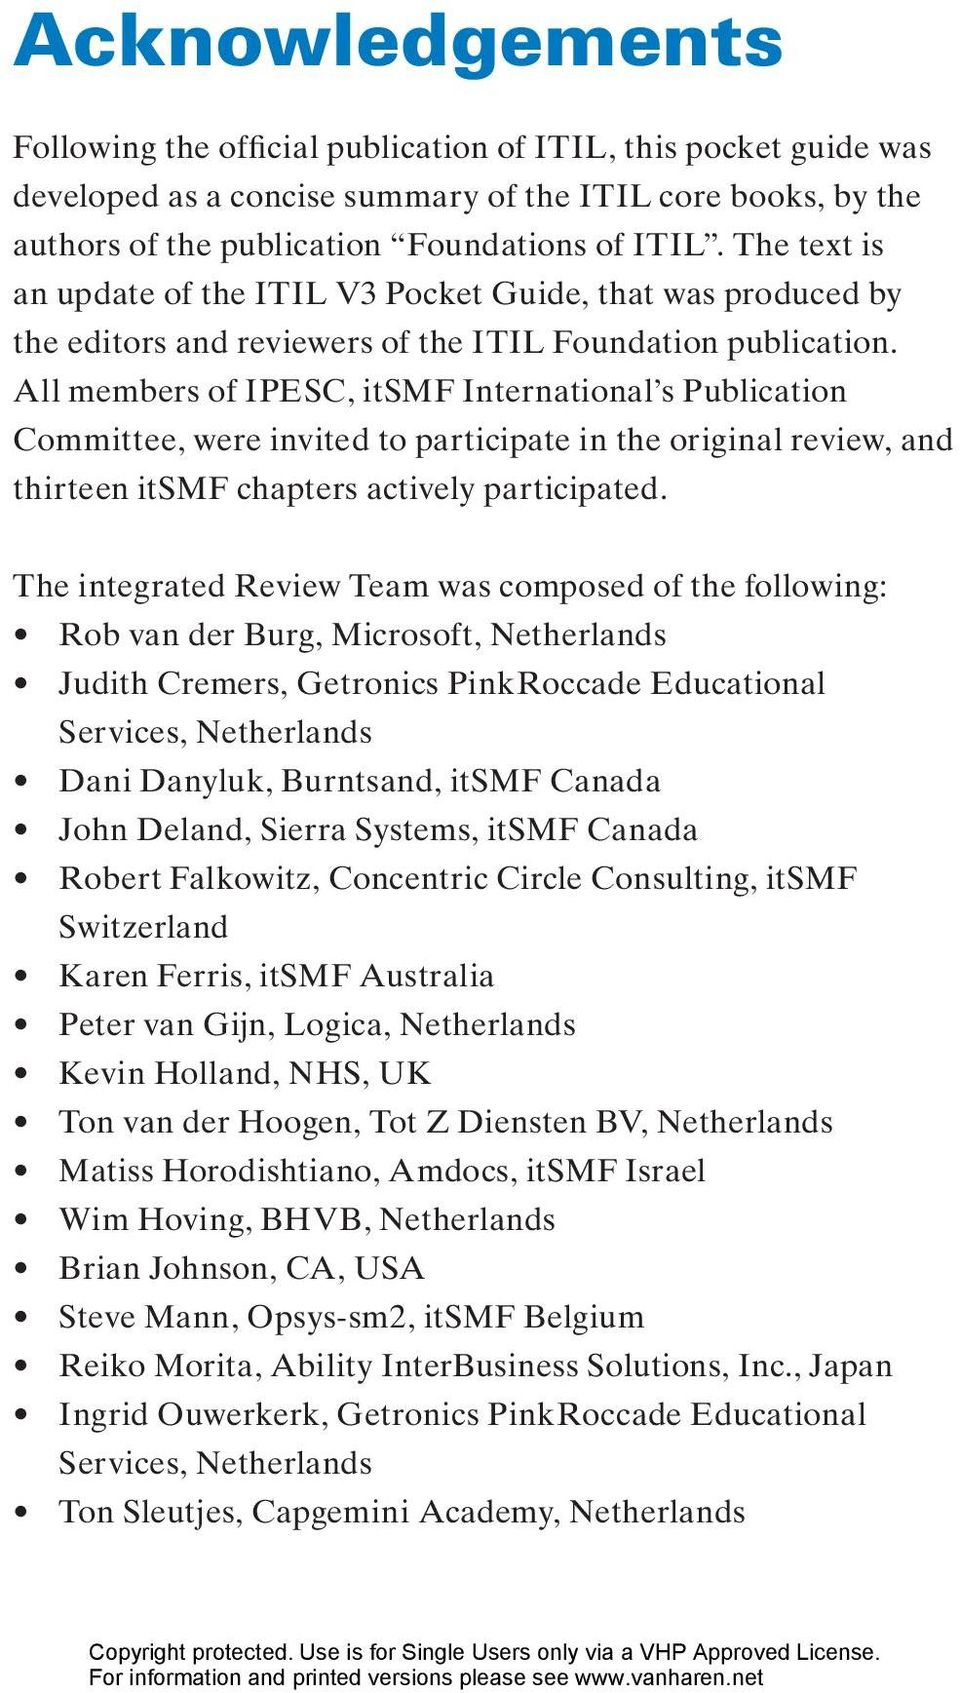 All members of IPESC, itsmf International s Publication Committee, were invited to participate in the original review, and thirteen itsmf chapters actively participated.